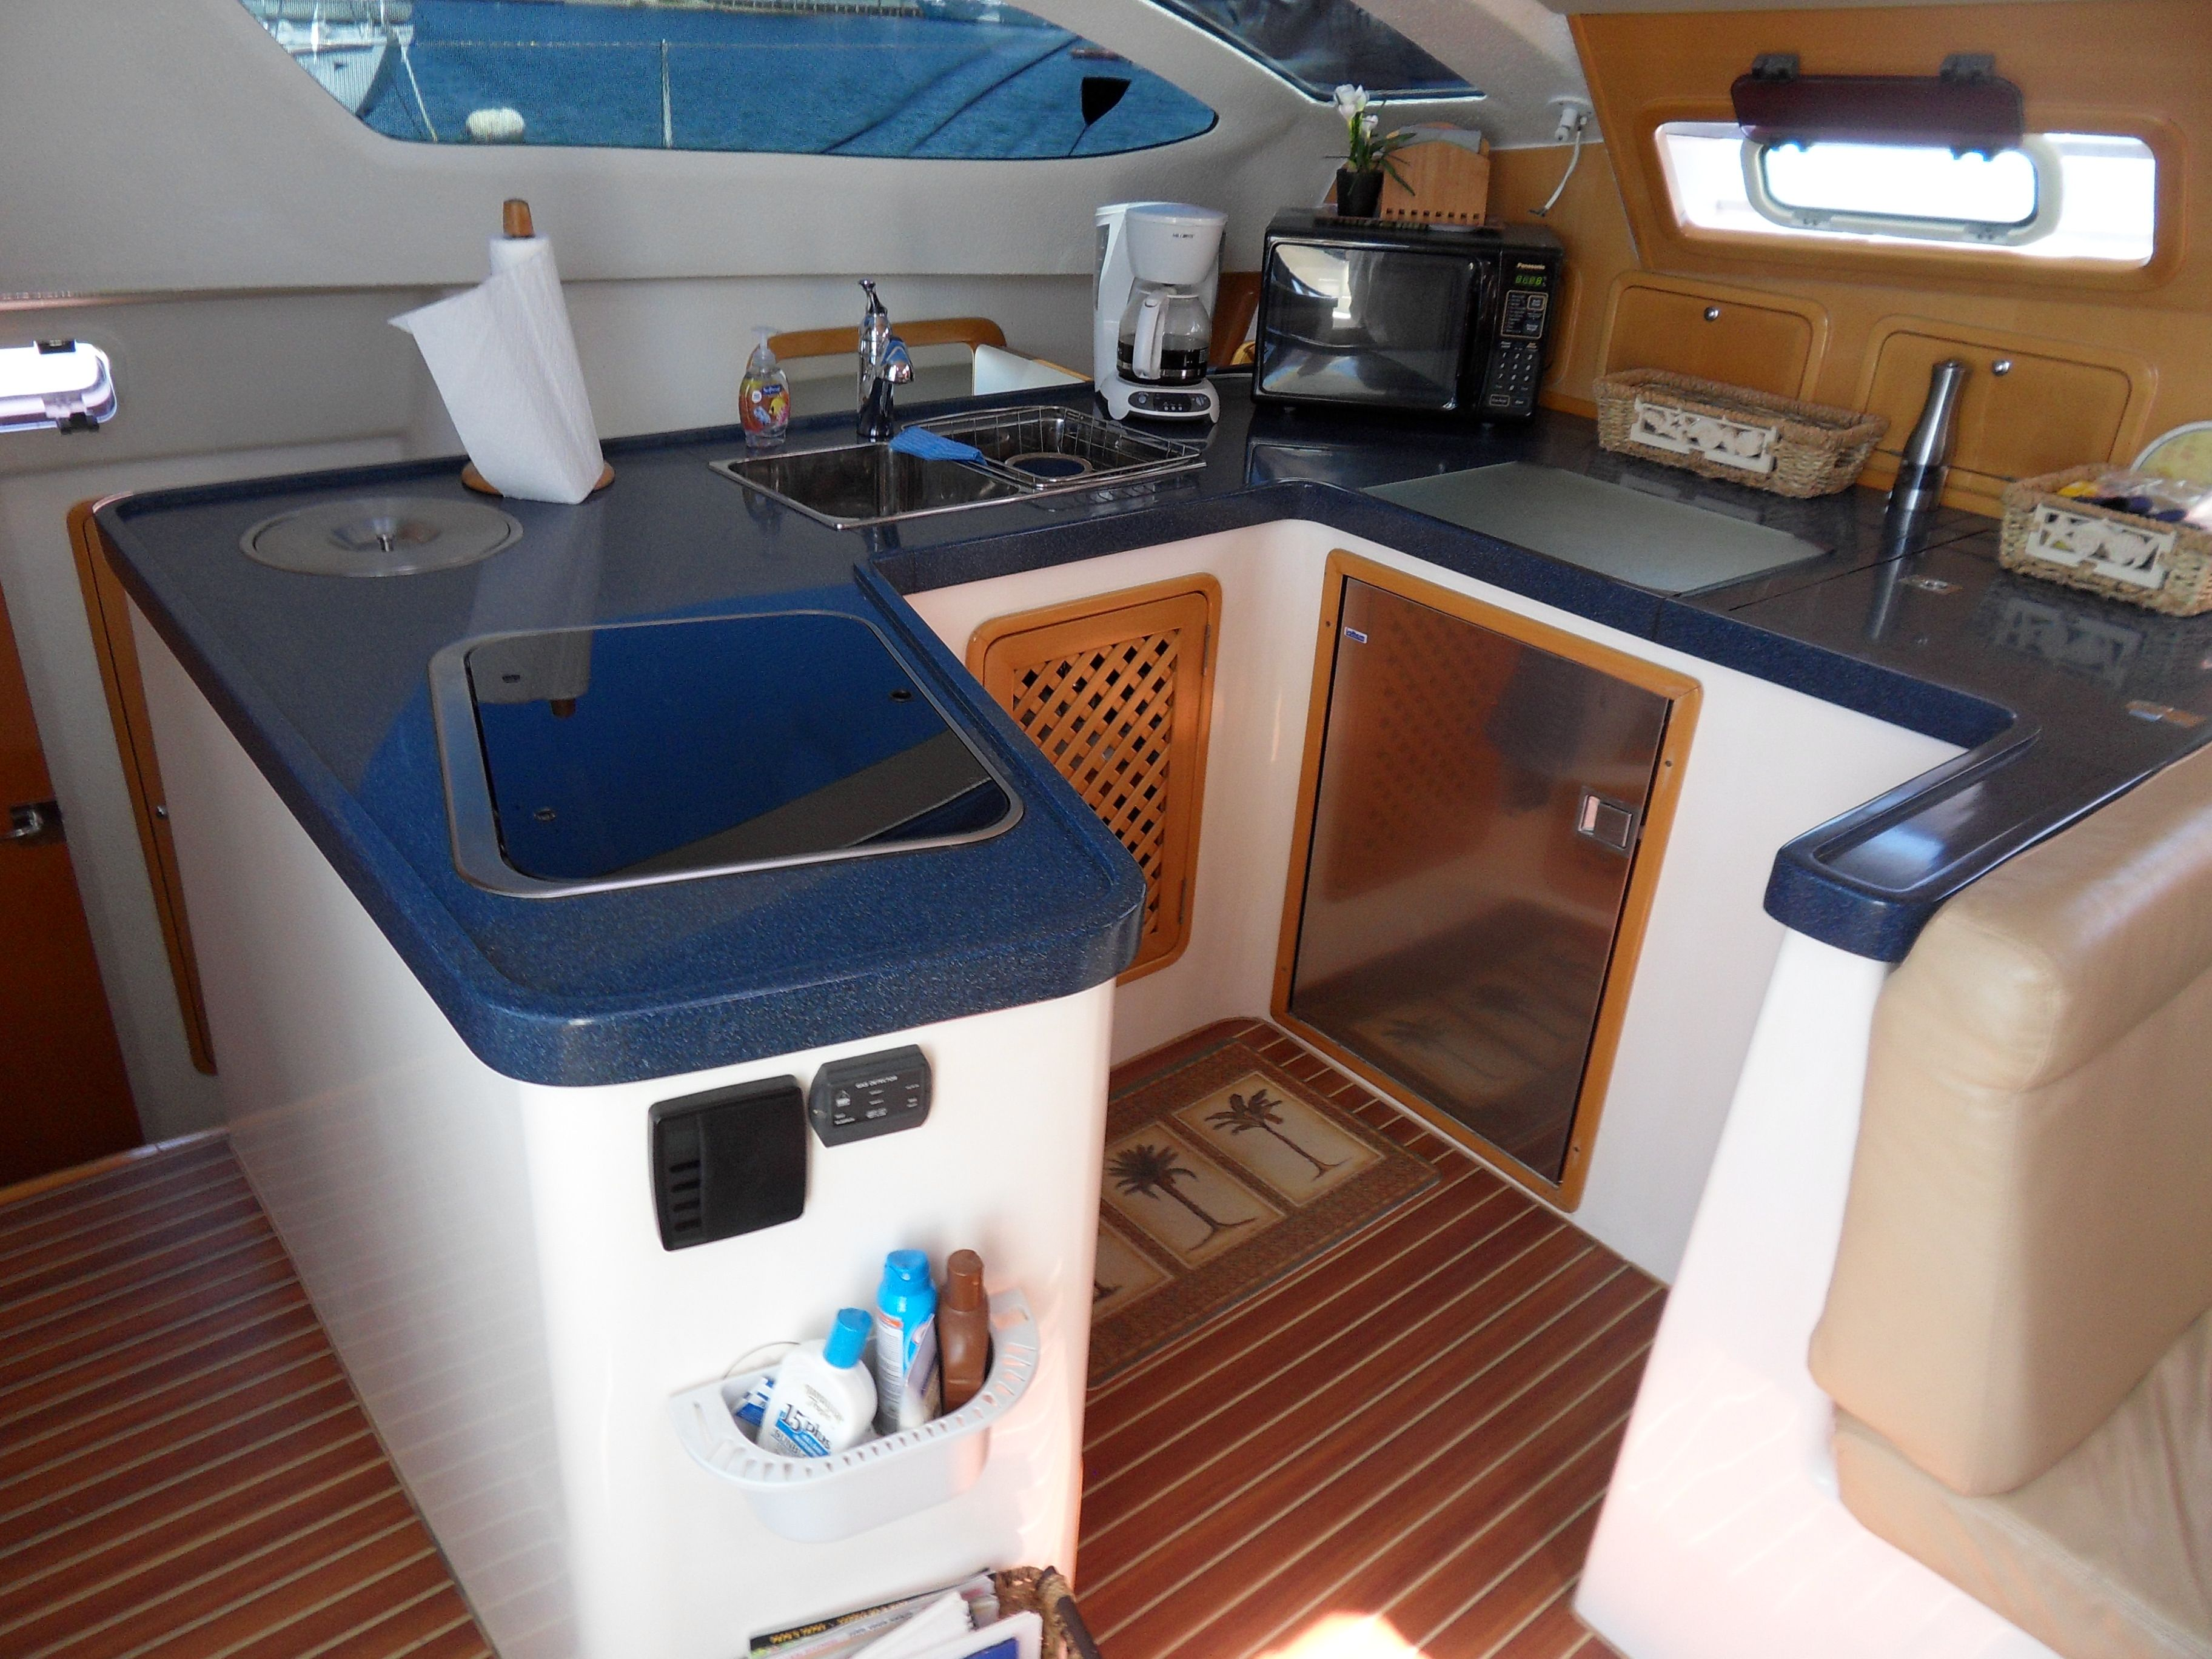 Admiral 38 Galley Yacht Interior Boat Galley Sailing Yacht